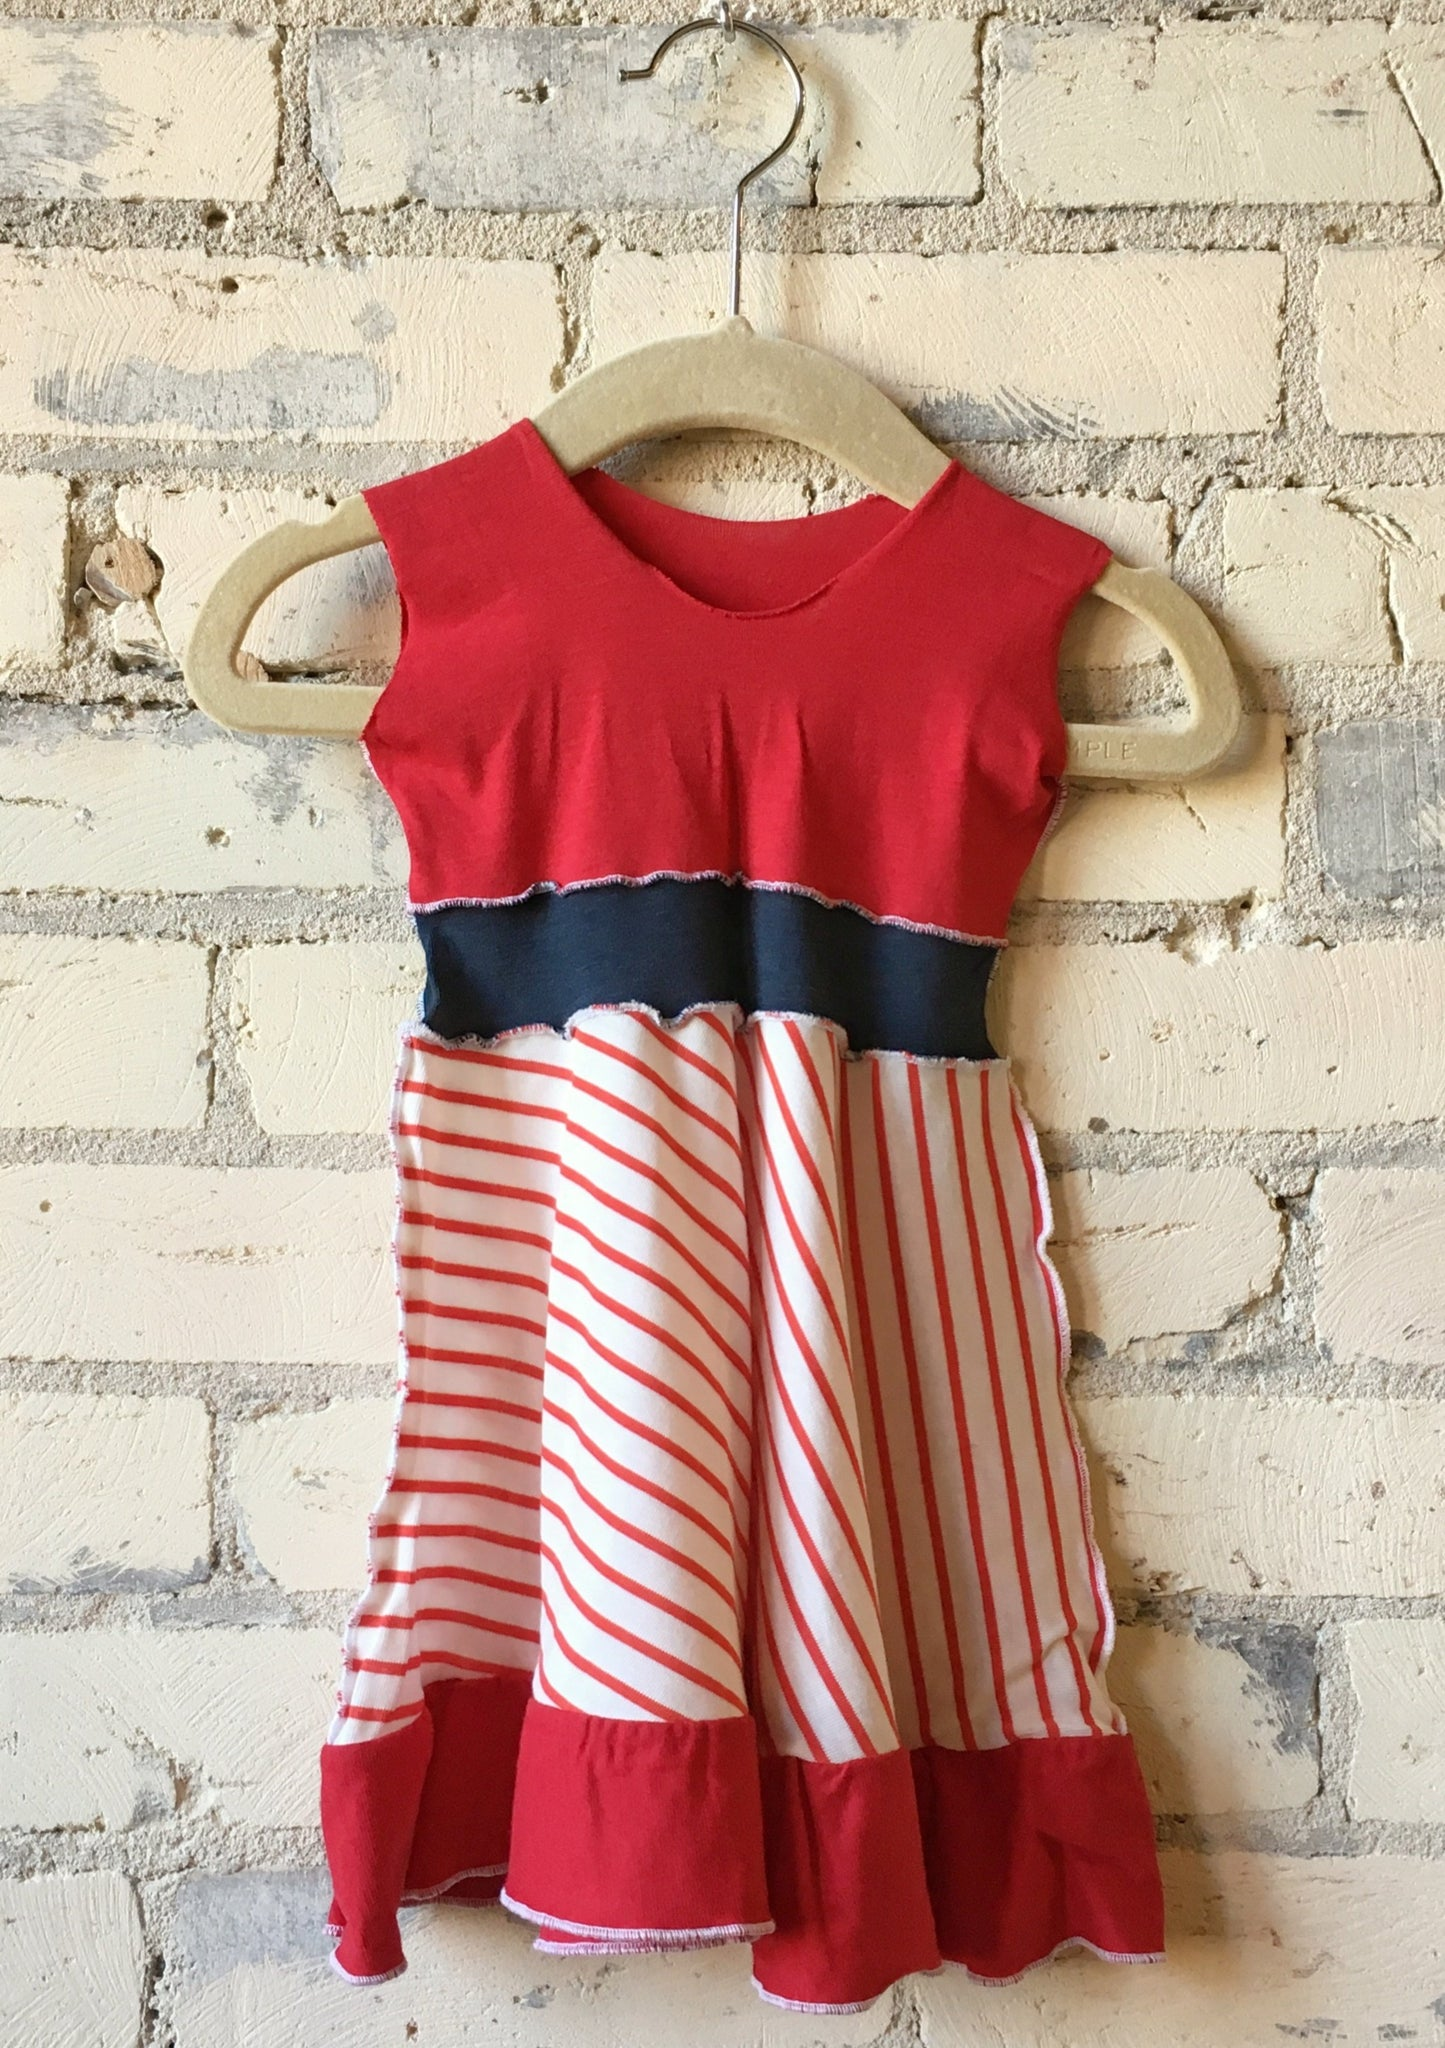 6-18 Month Red & White Stripe Organic Cotton Jersey Baby Dress - Yana Dee